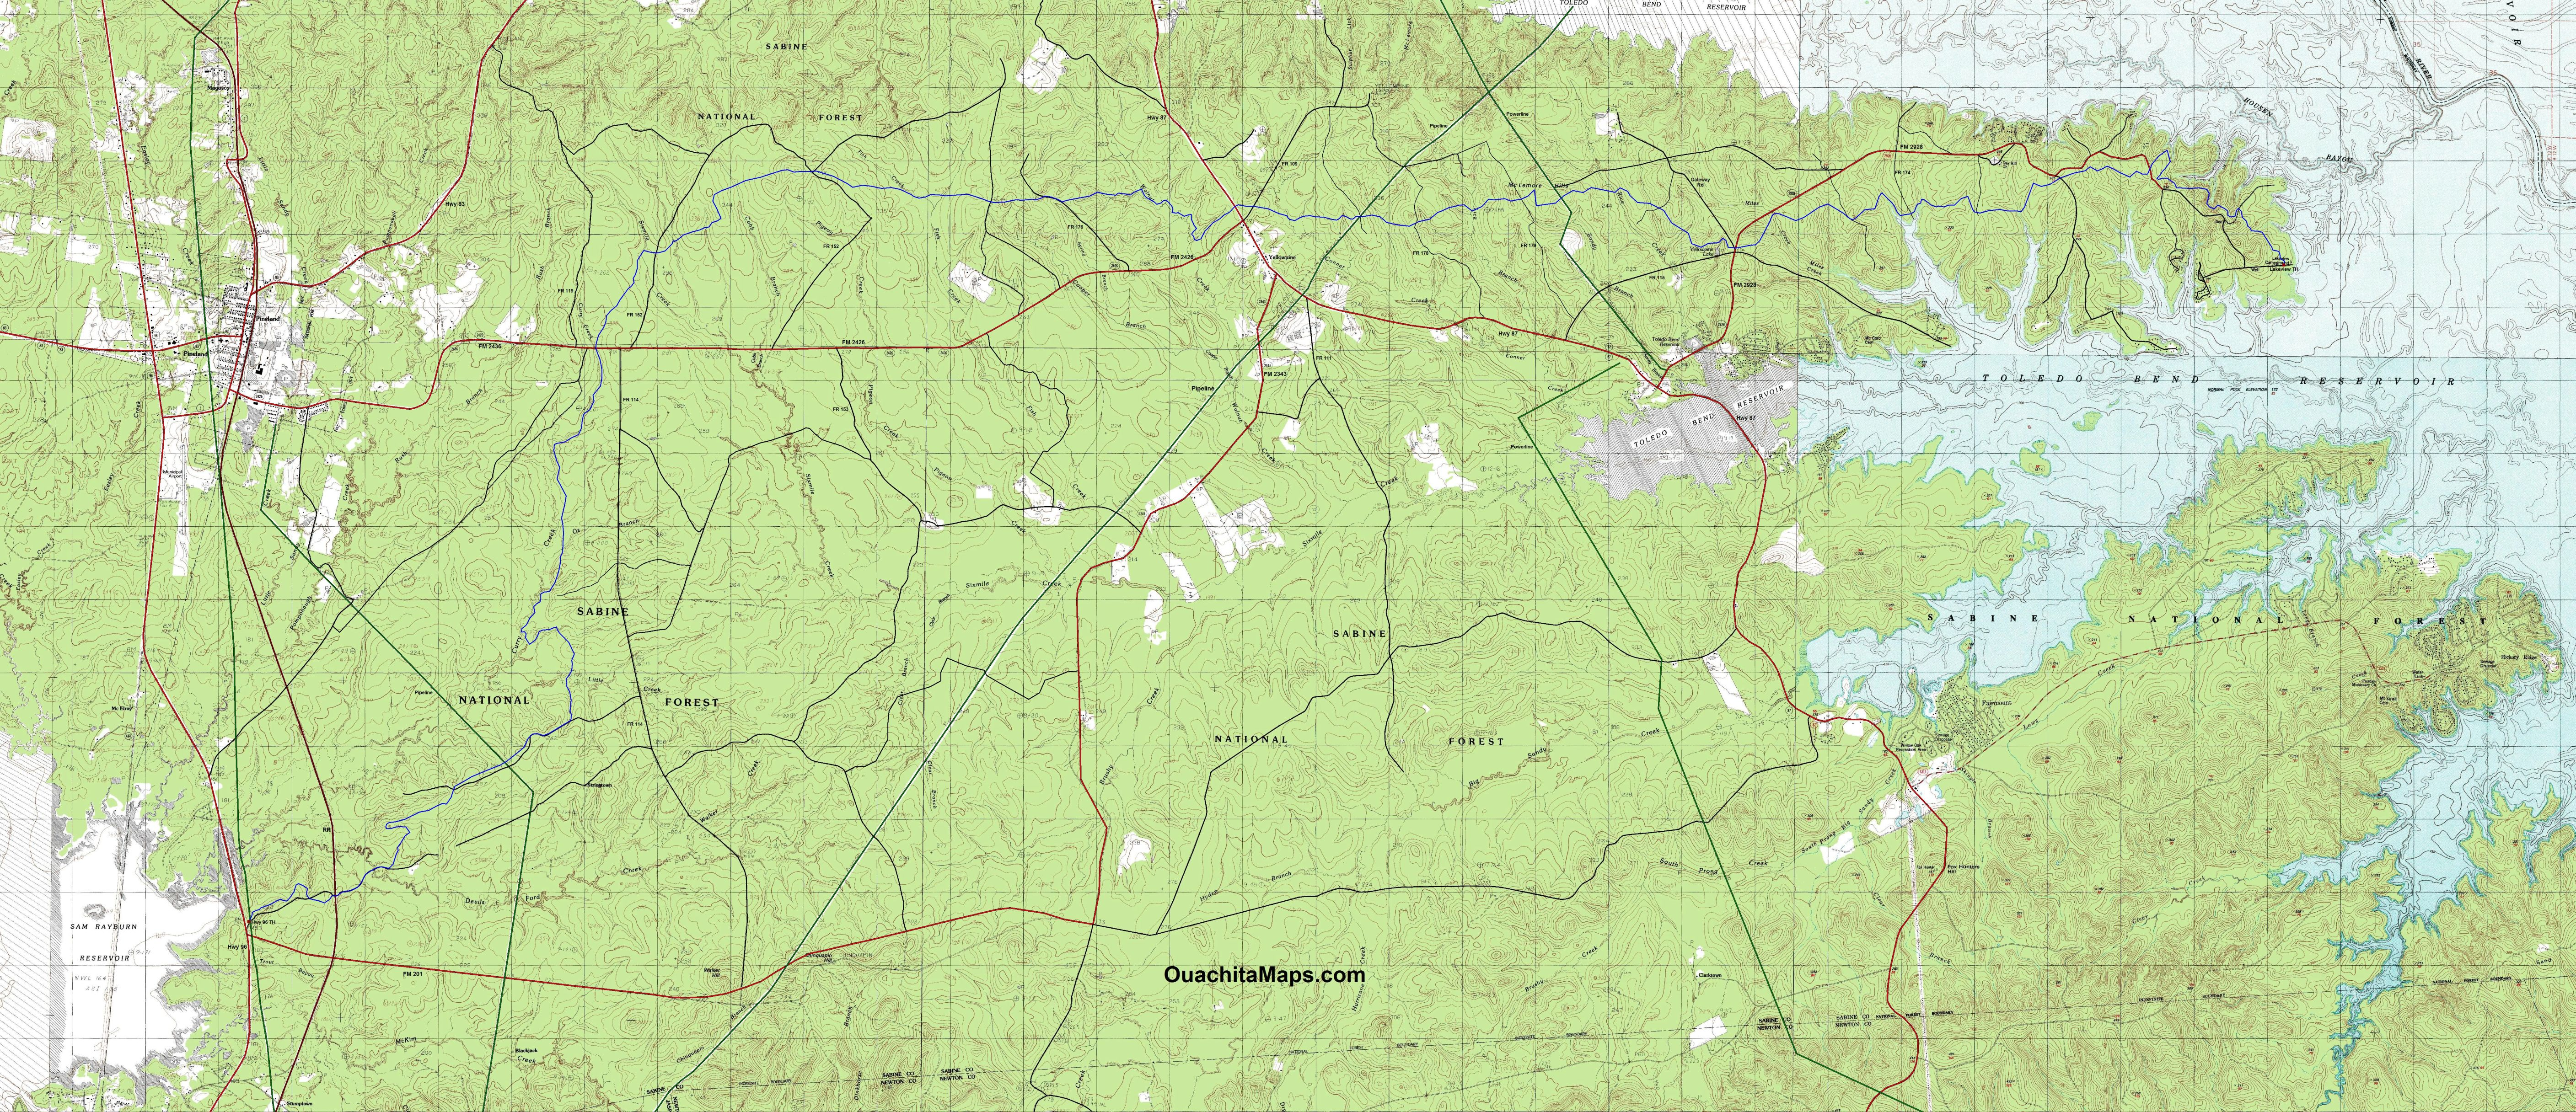 Trail Between The Lakes Sabine National Forest Texas Free - Texas topographic maps free